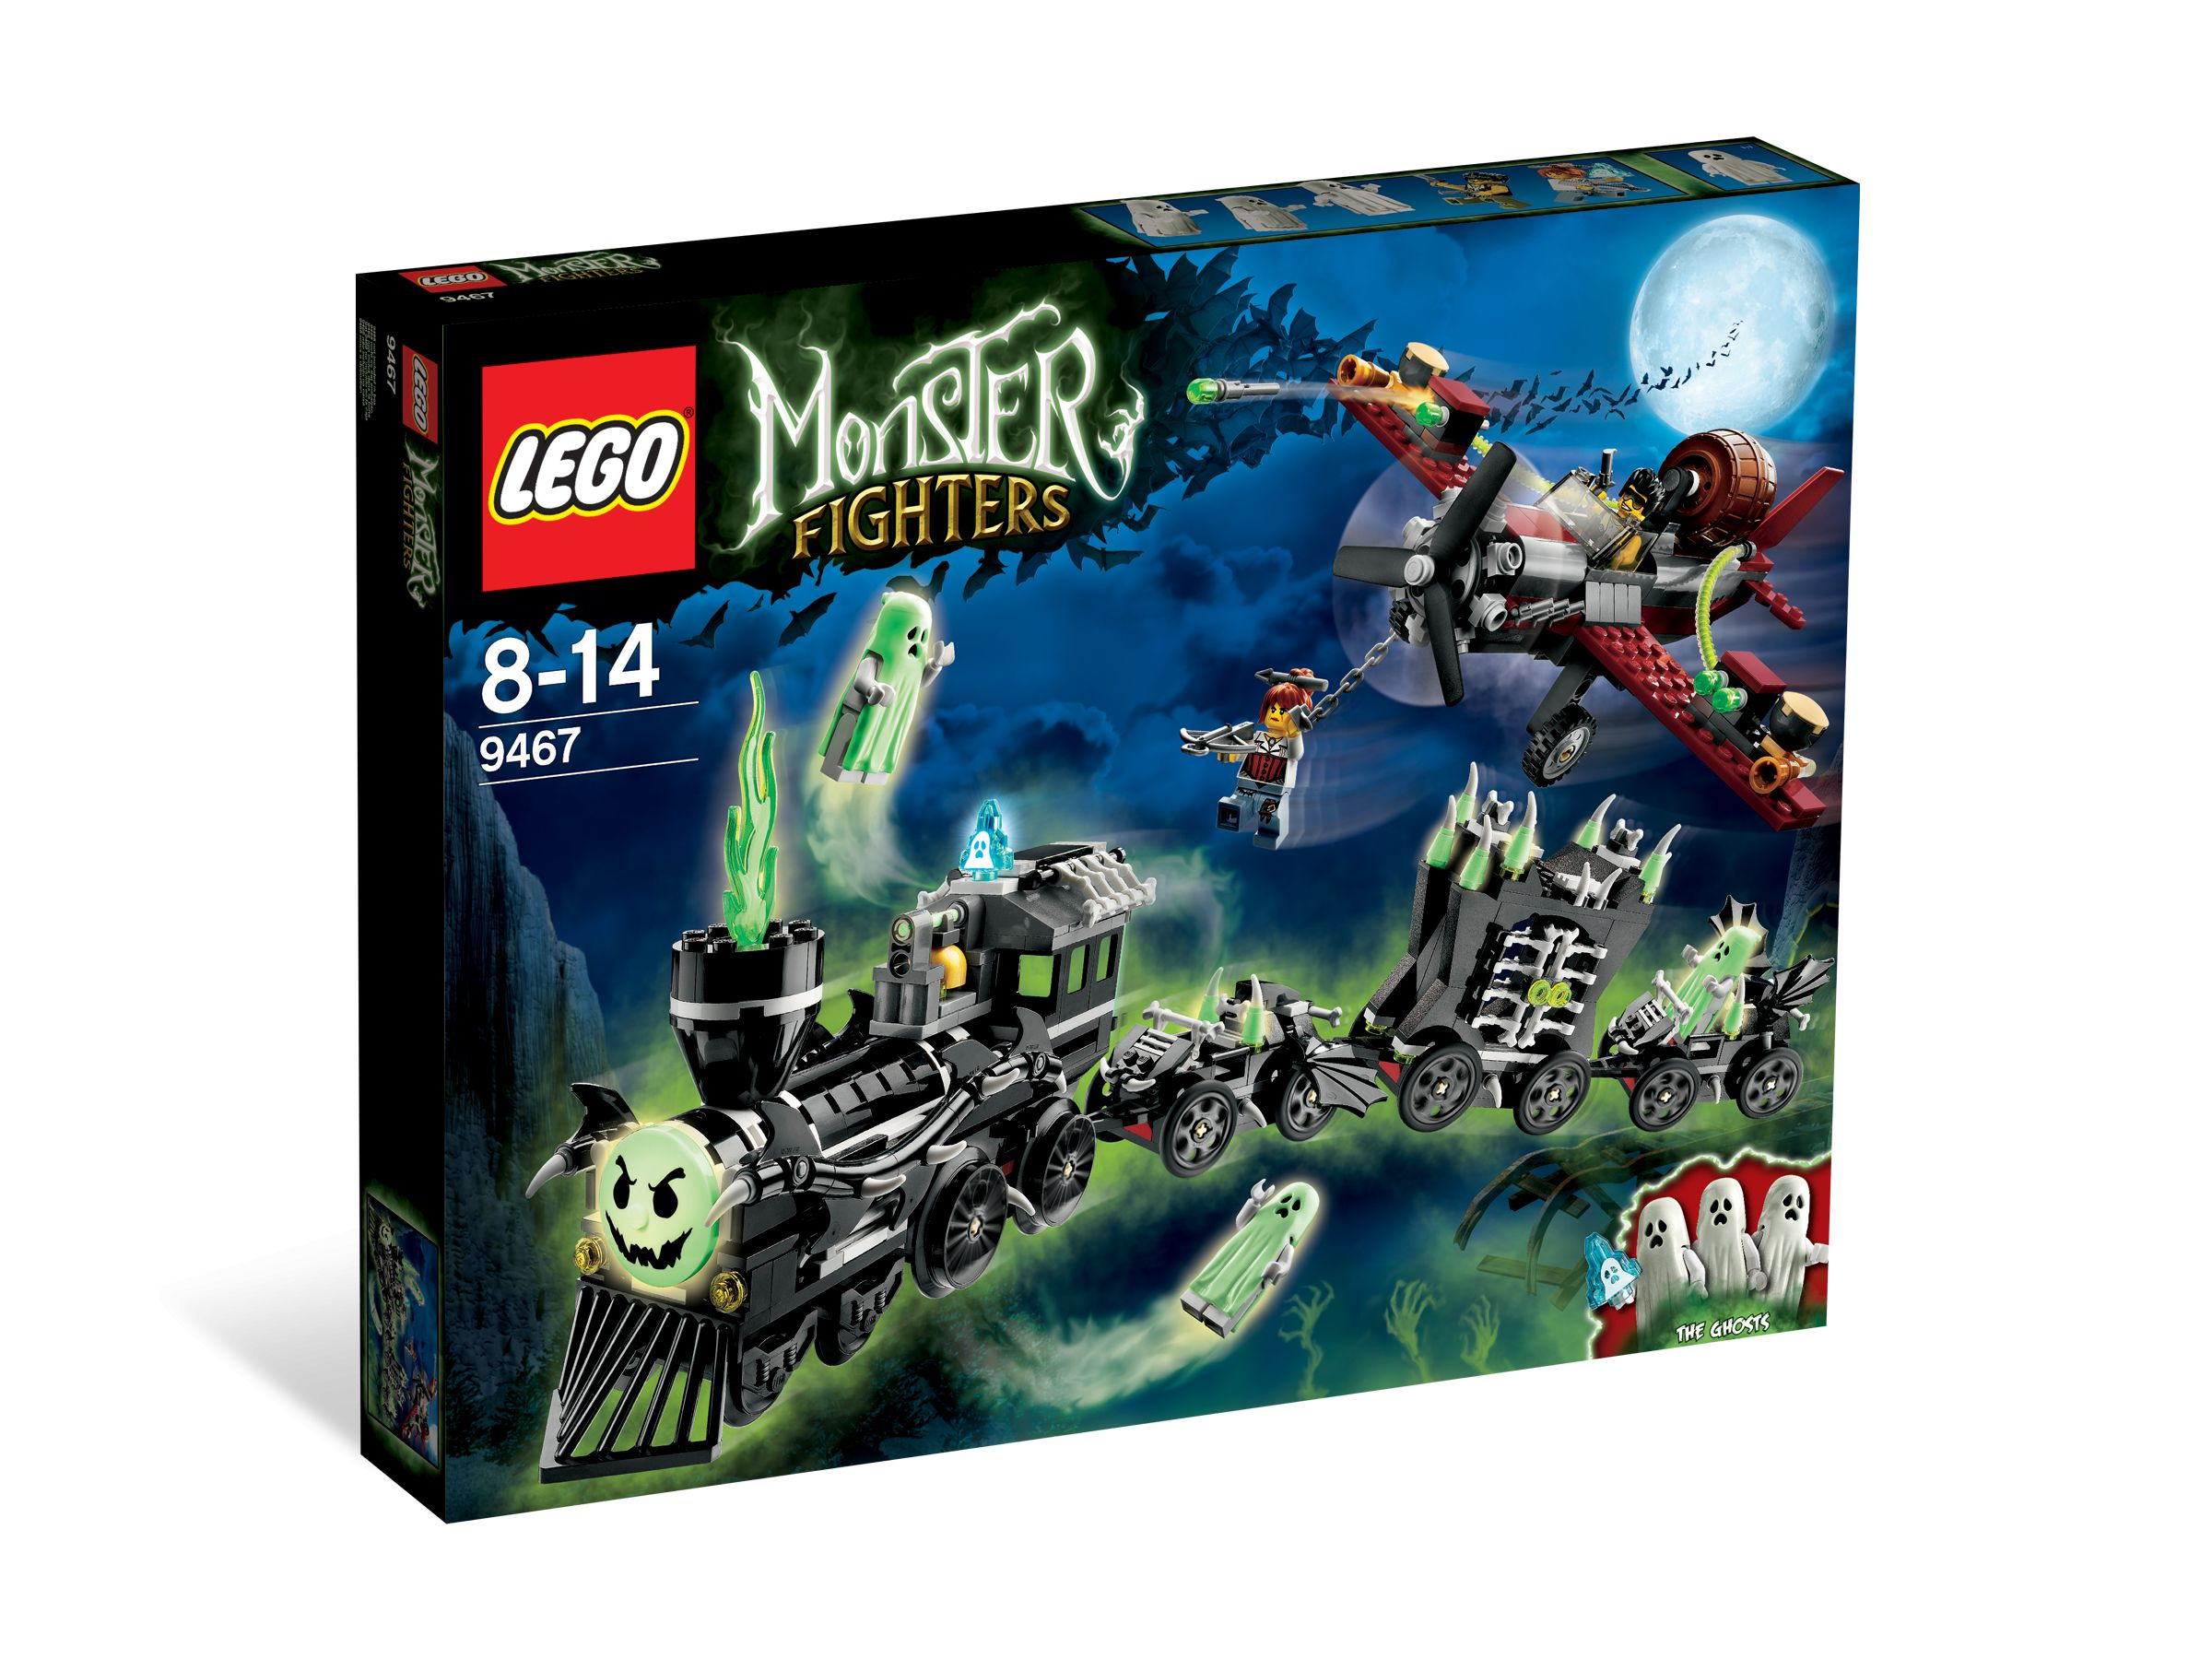 LEGO Monster Fighters 9467 The Ghost Train LEGO_9467_alt1.jpg